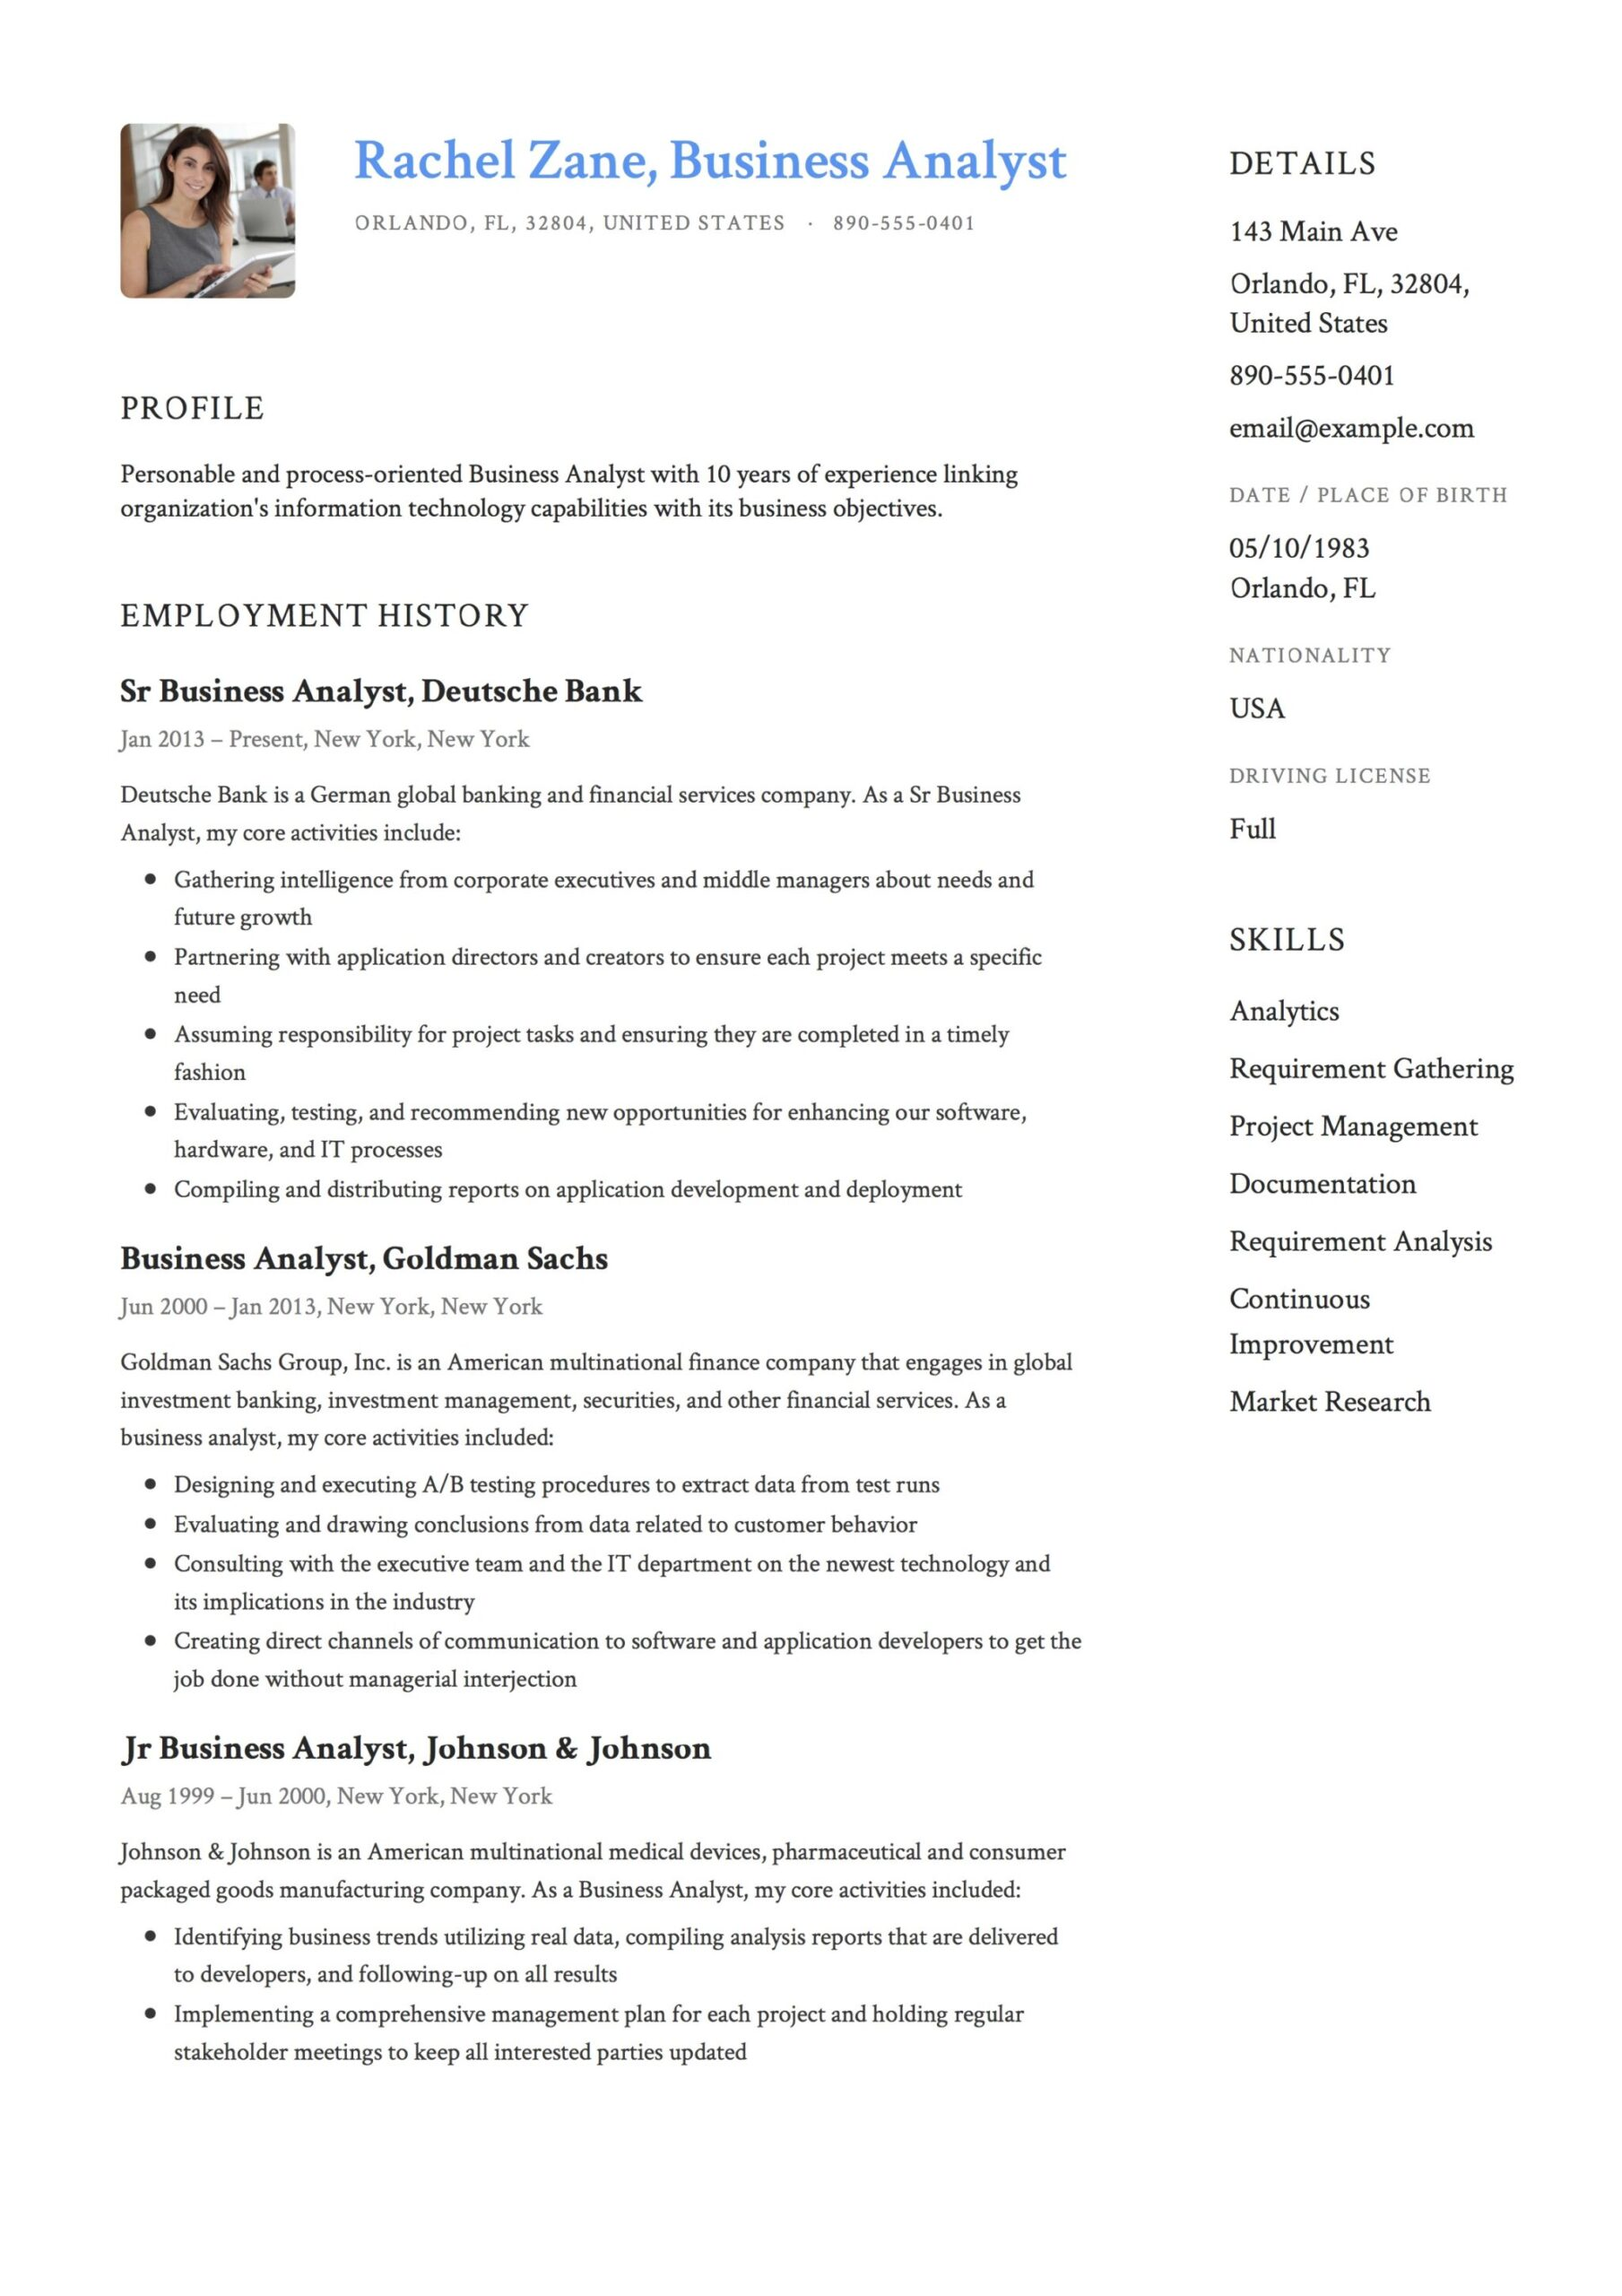 business analyst resume guide templates pdf free downloads information technology sample Resume Information Technology Business Analyst Resume Sample